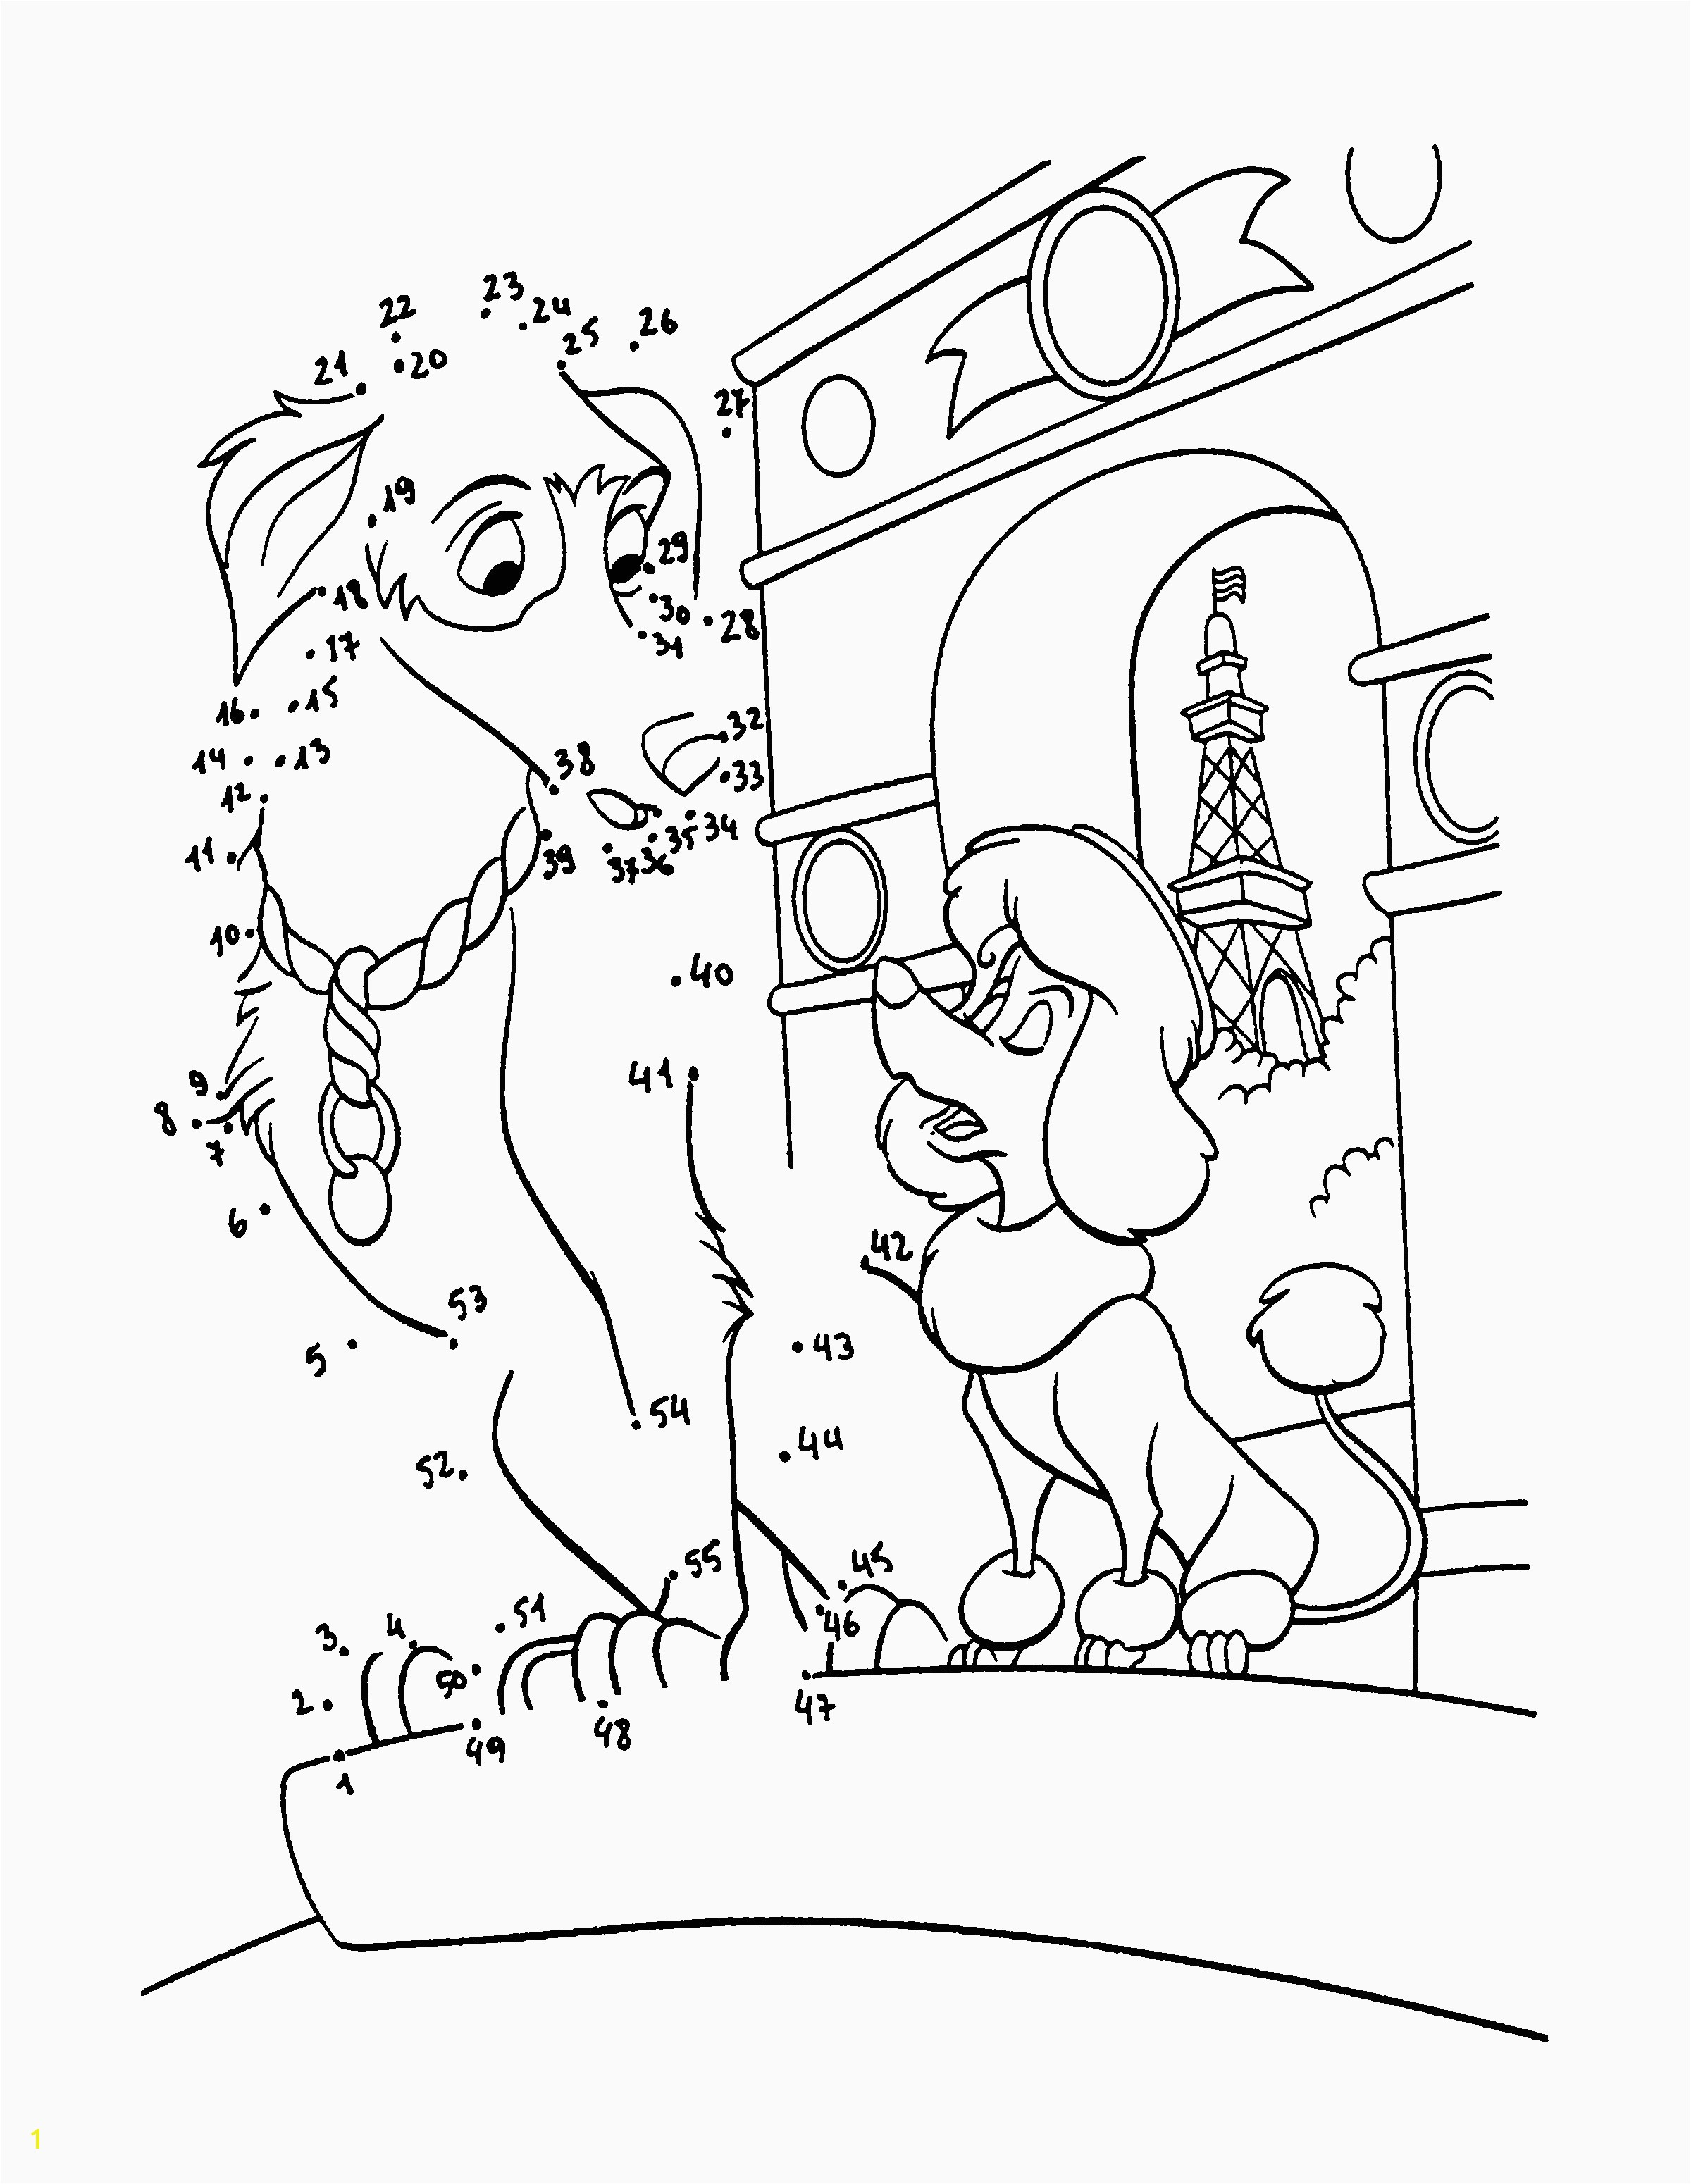 Free Printable Frozen Coloring Pages Olaf Coloring Pages Download thephotosync